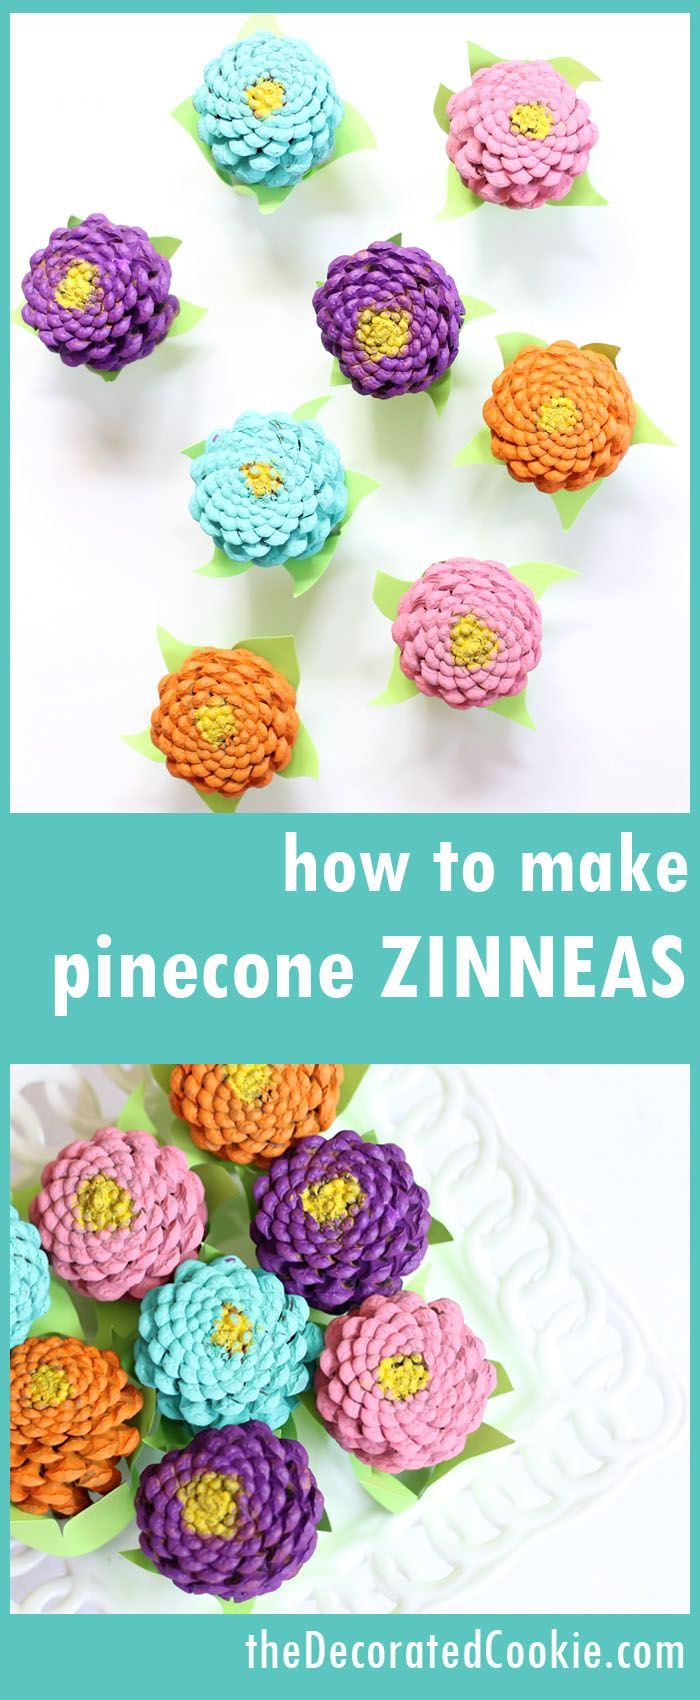 how to paint easy pine cone zinneas a colorful home decor craft